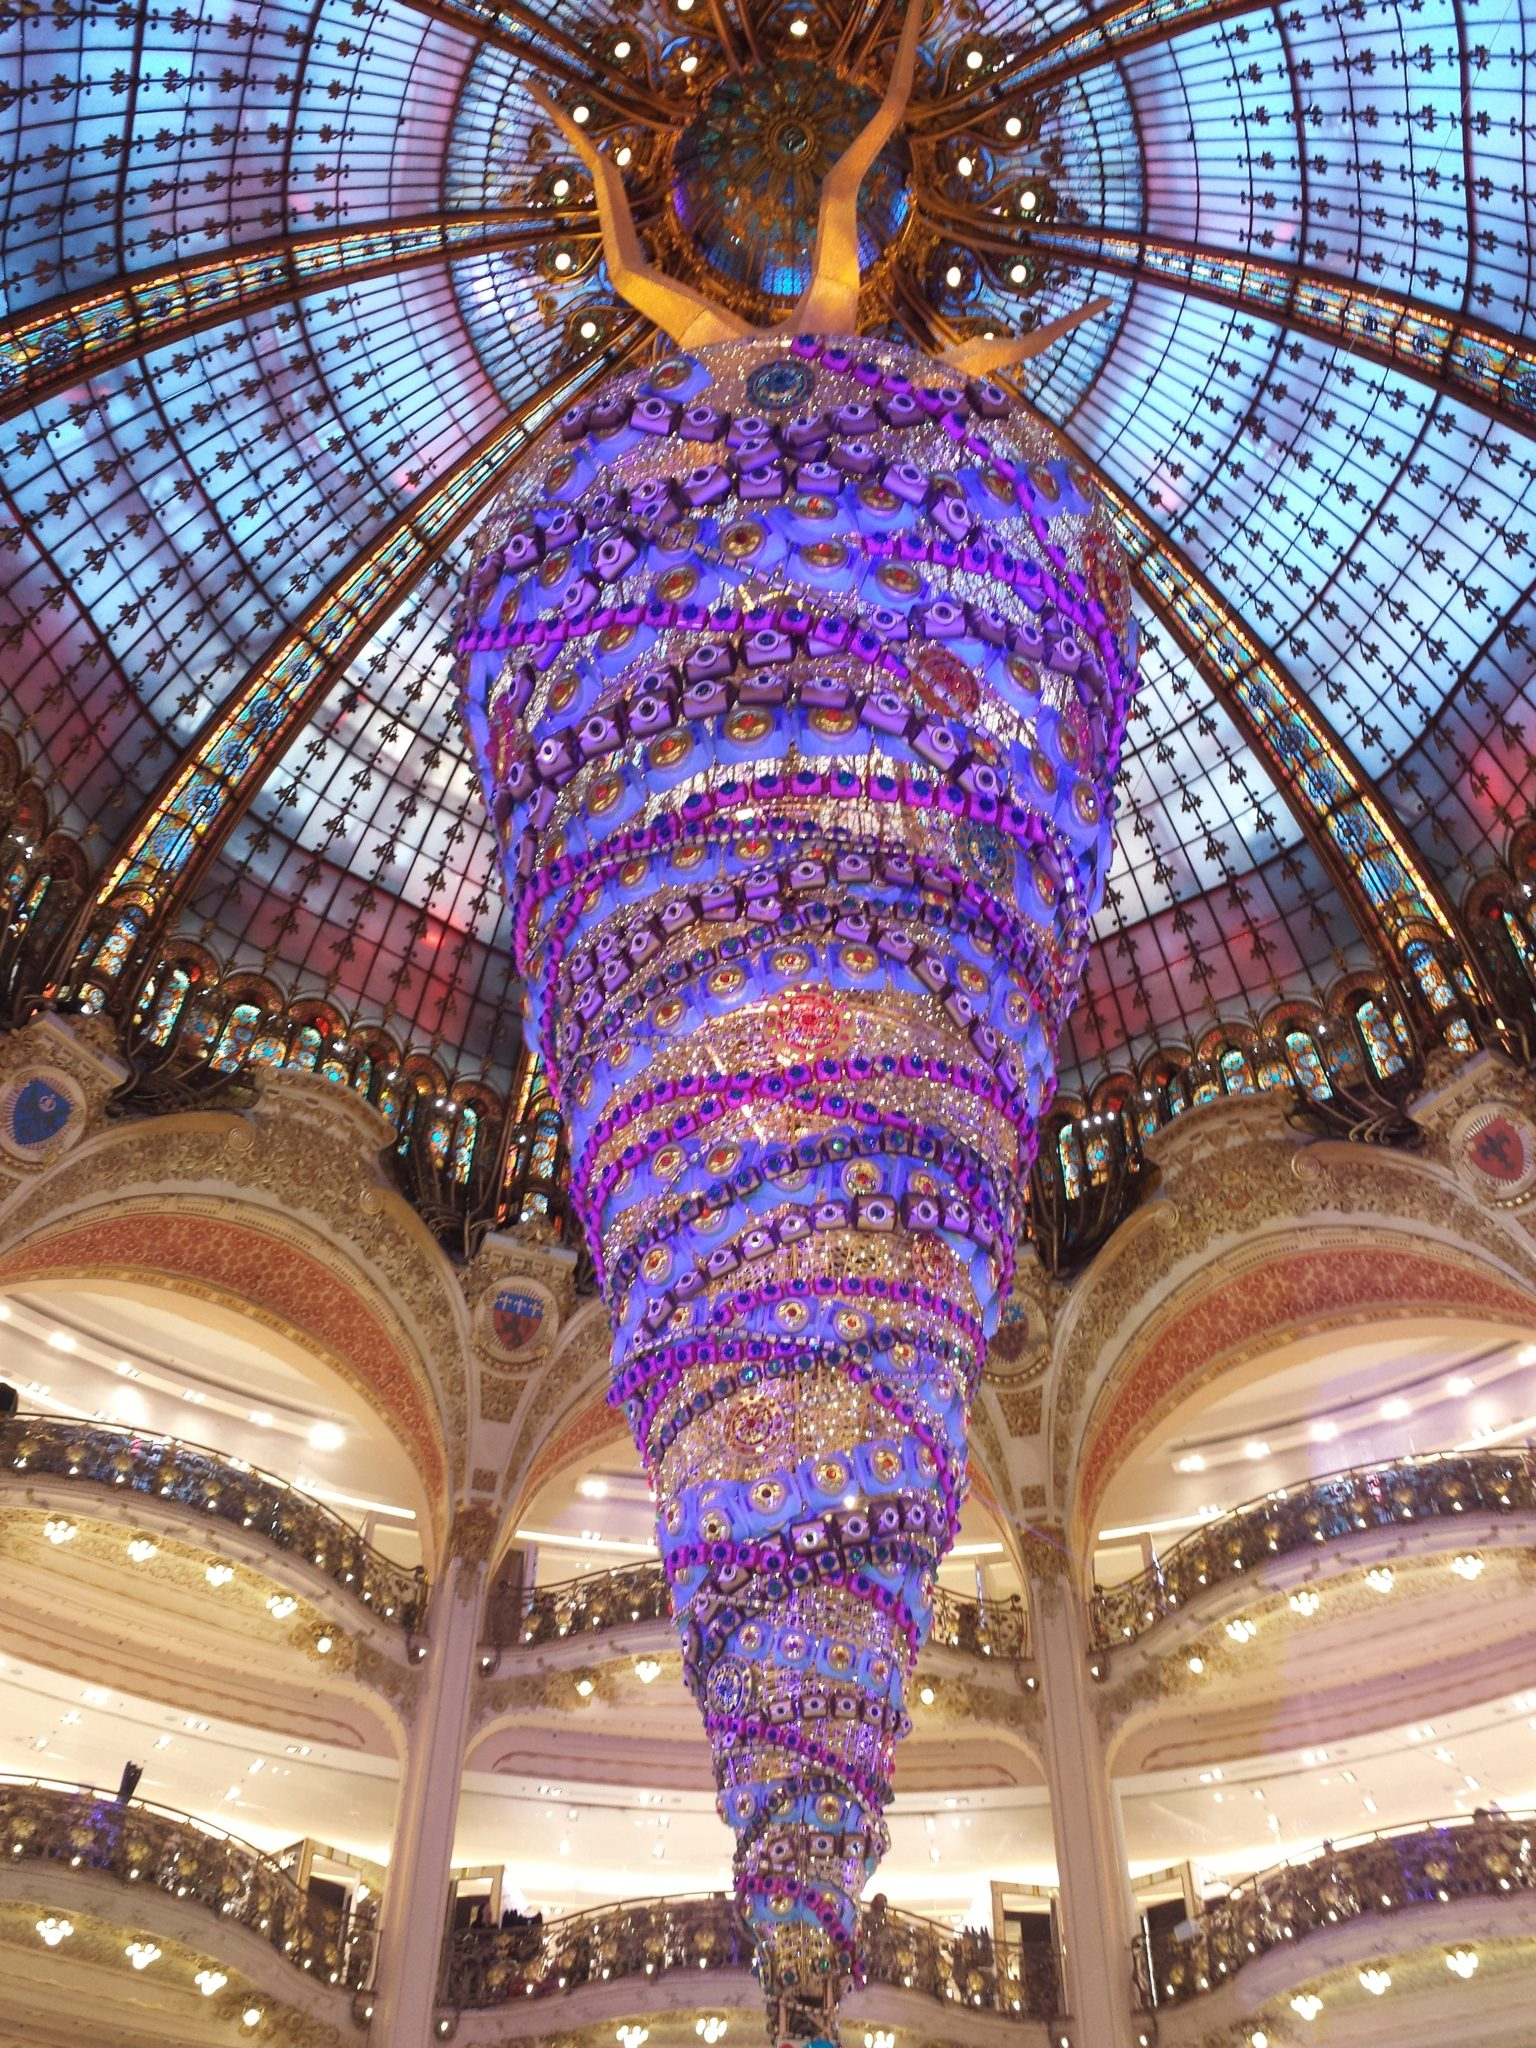 Sapin galeries lafayette paris magasin noël décoration